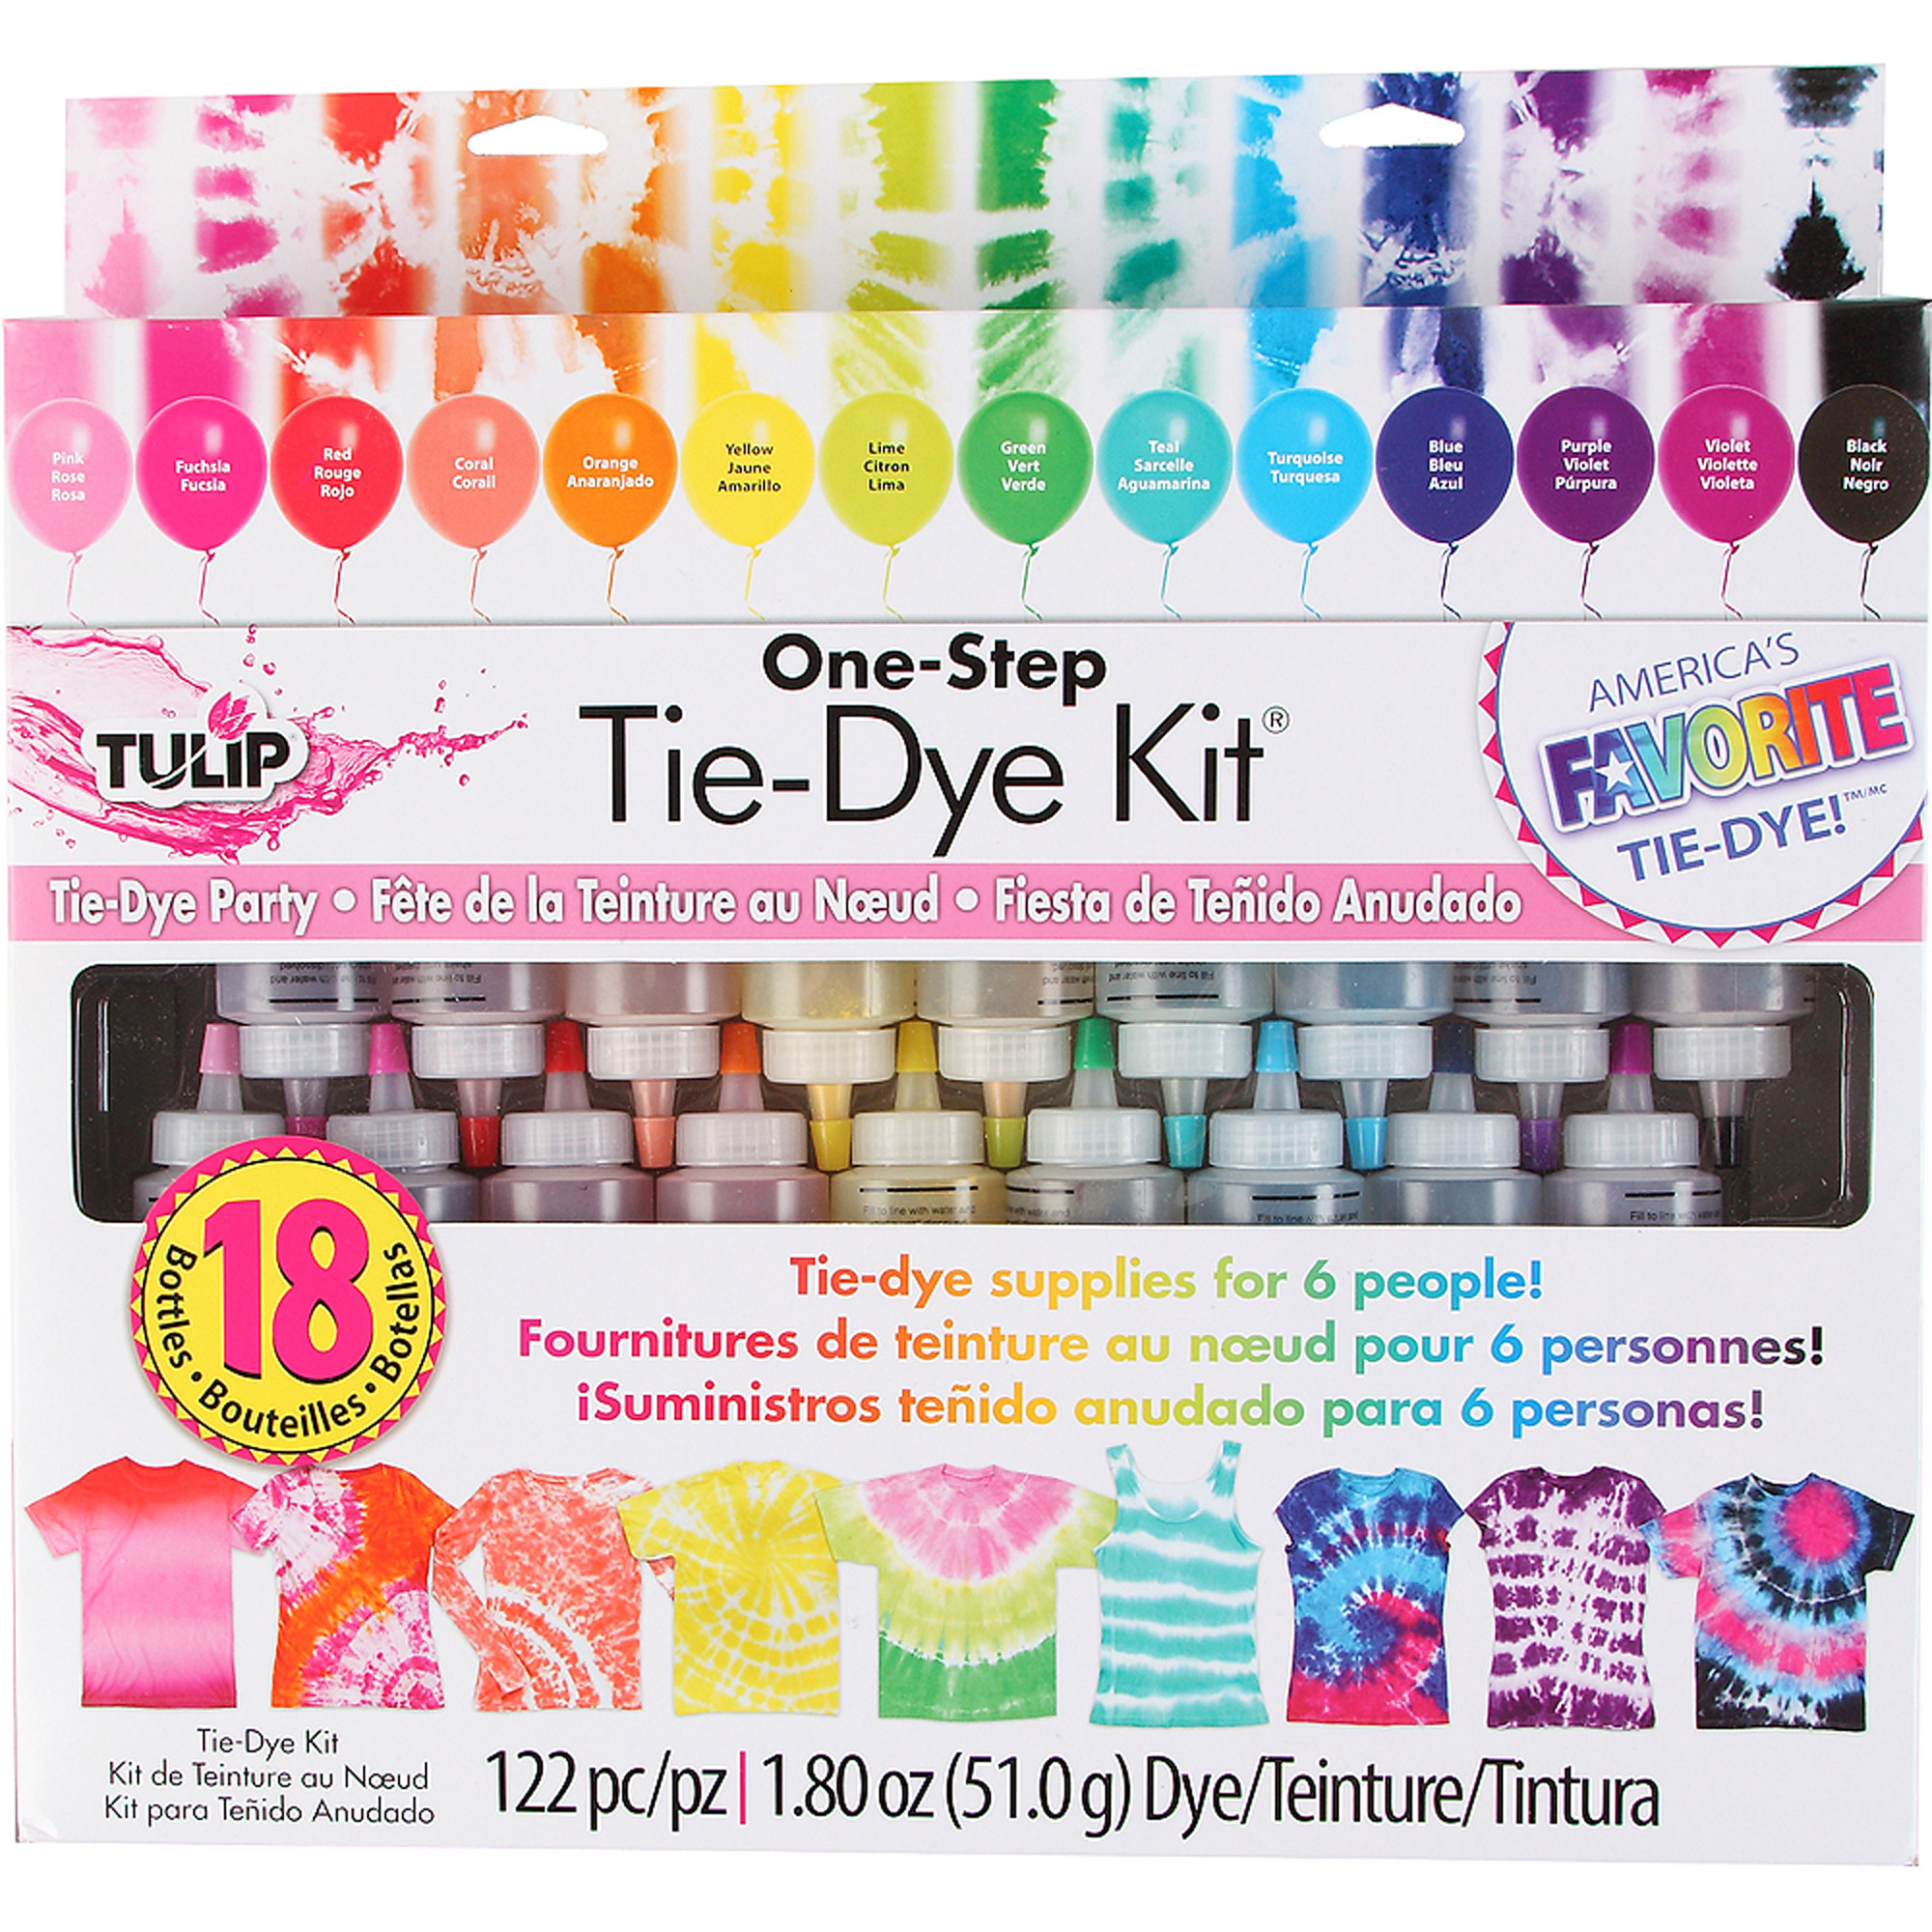 Tulip 1-Step 18-Bottle Tie-Dye Kit